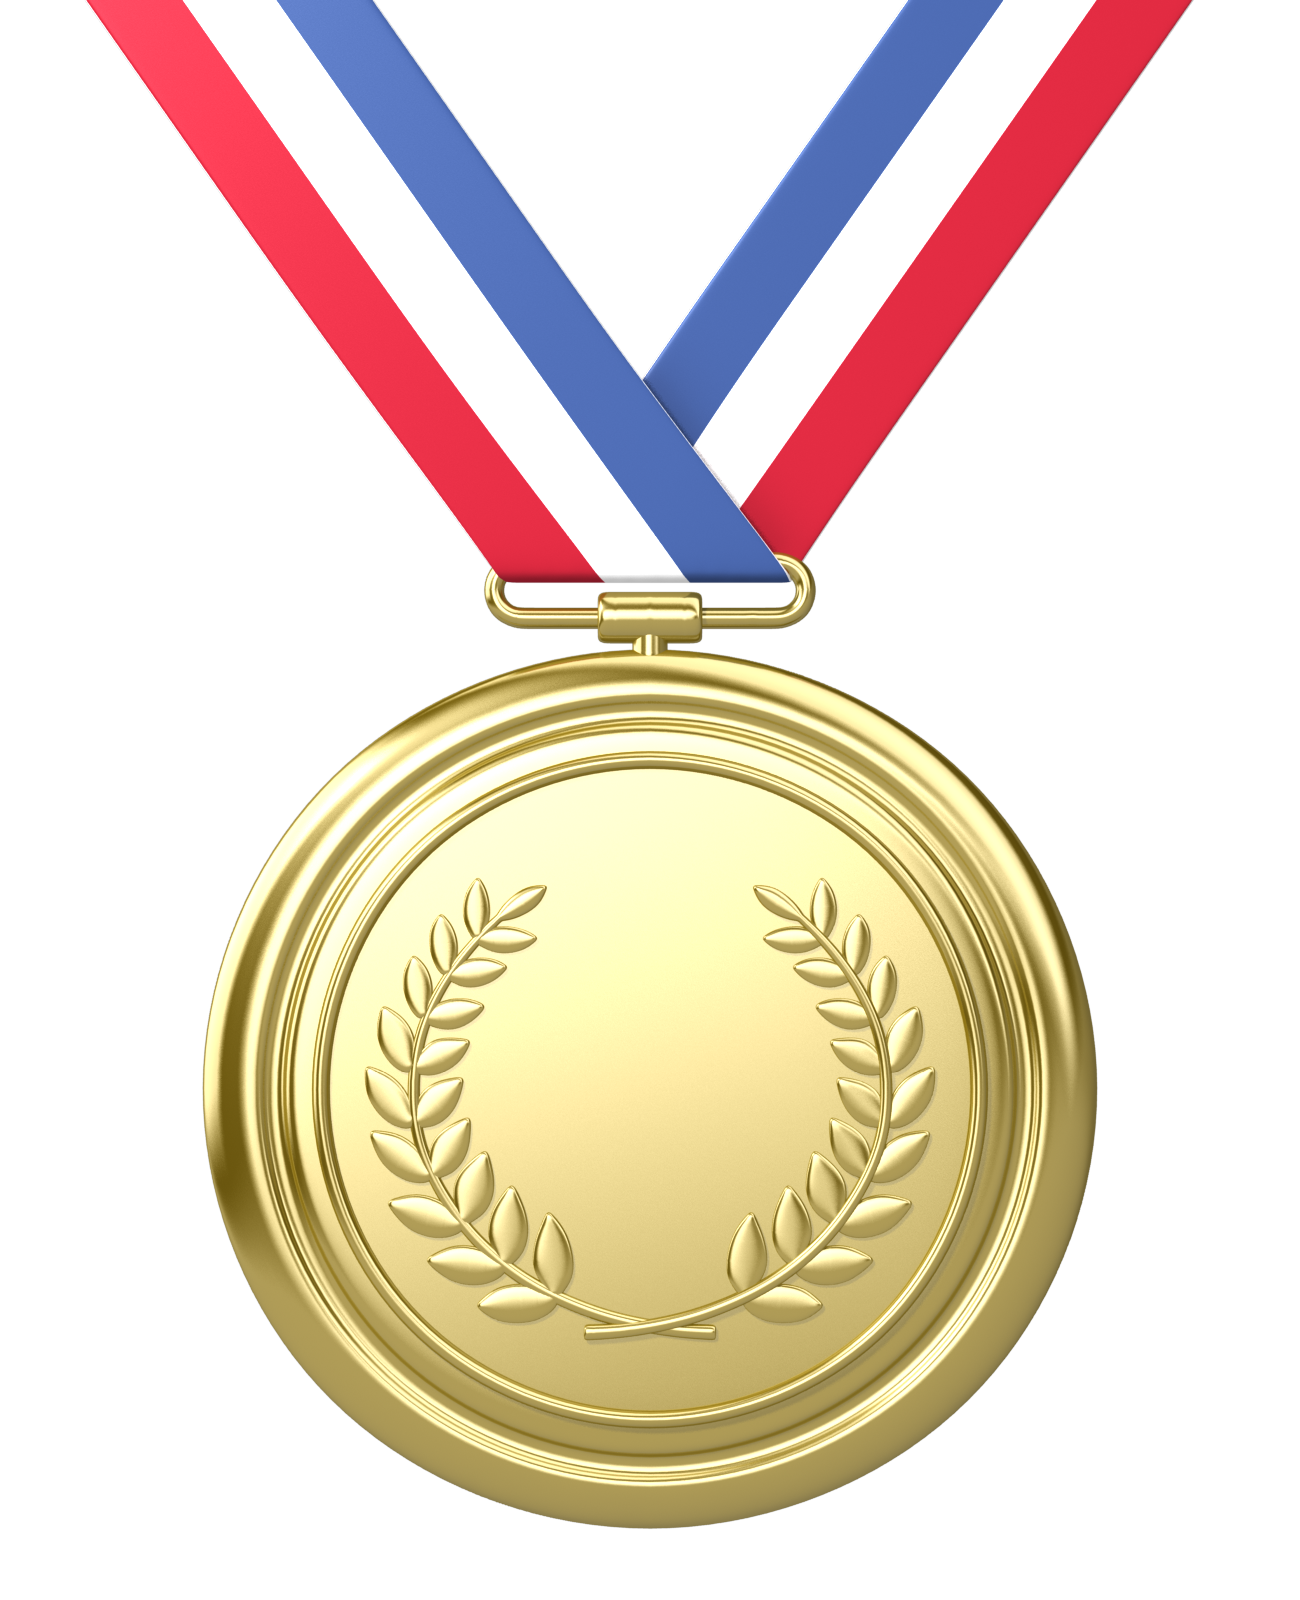 Medal drawing winter olympic. Collection of clipart